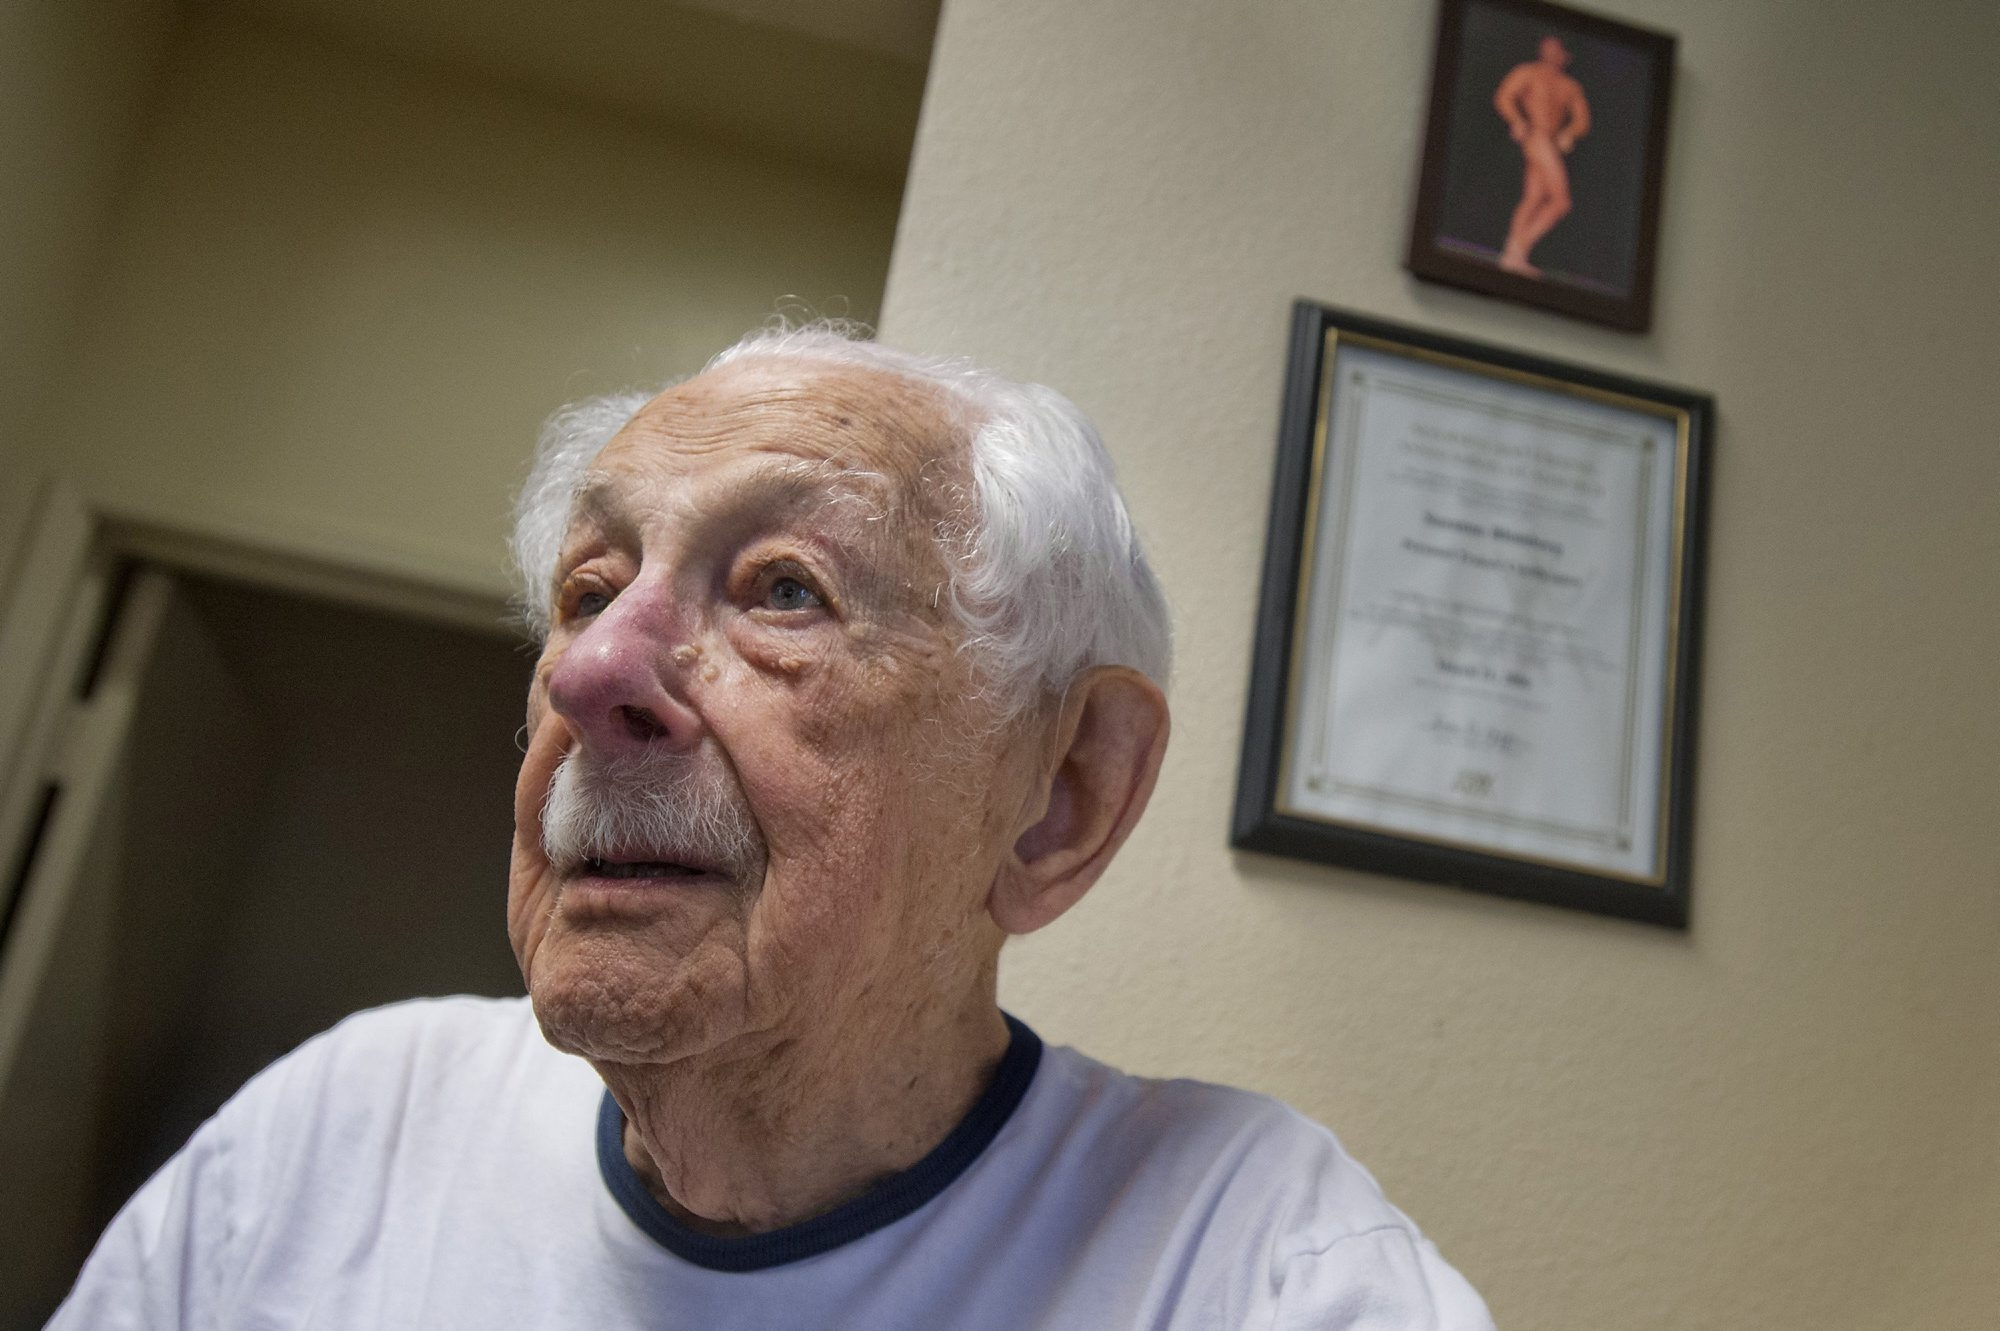 Louis Weintraub, who turned 100 in January, works out at a gym in Sacramento, Calif. Though his eyesight is failing, Weintraub is still leads an active life.